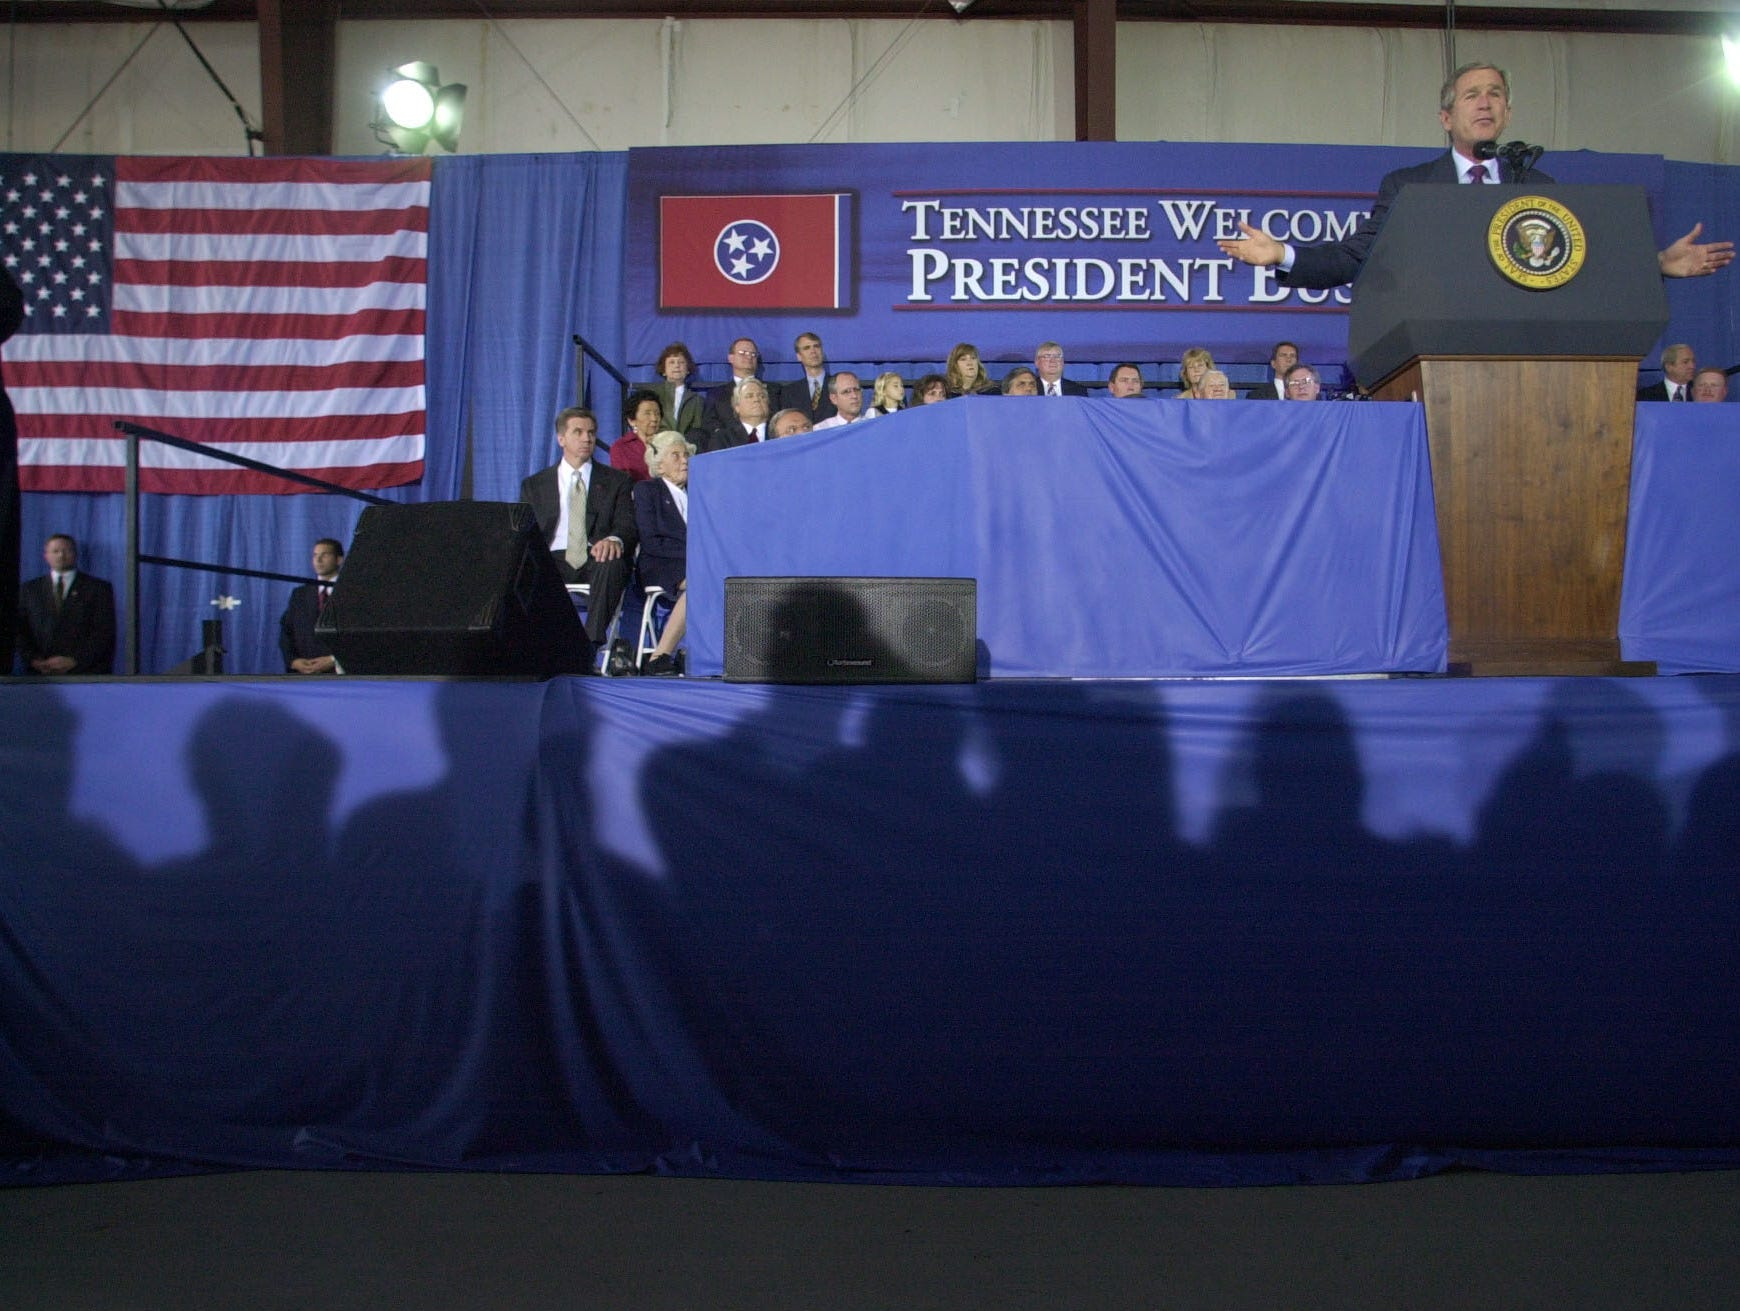 President George W. Bush addresses the crowd Tuesday, Oct., 8, 2002 at the Cherokee Aviation Hangar in Alcoa, Tenn. during a visit. Bush then travels to Knoxville where he will attend the Van Hilleary for Governor Luncheon at the Knoxville Convention Center. 2002